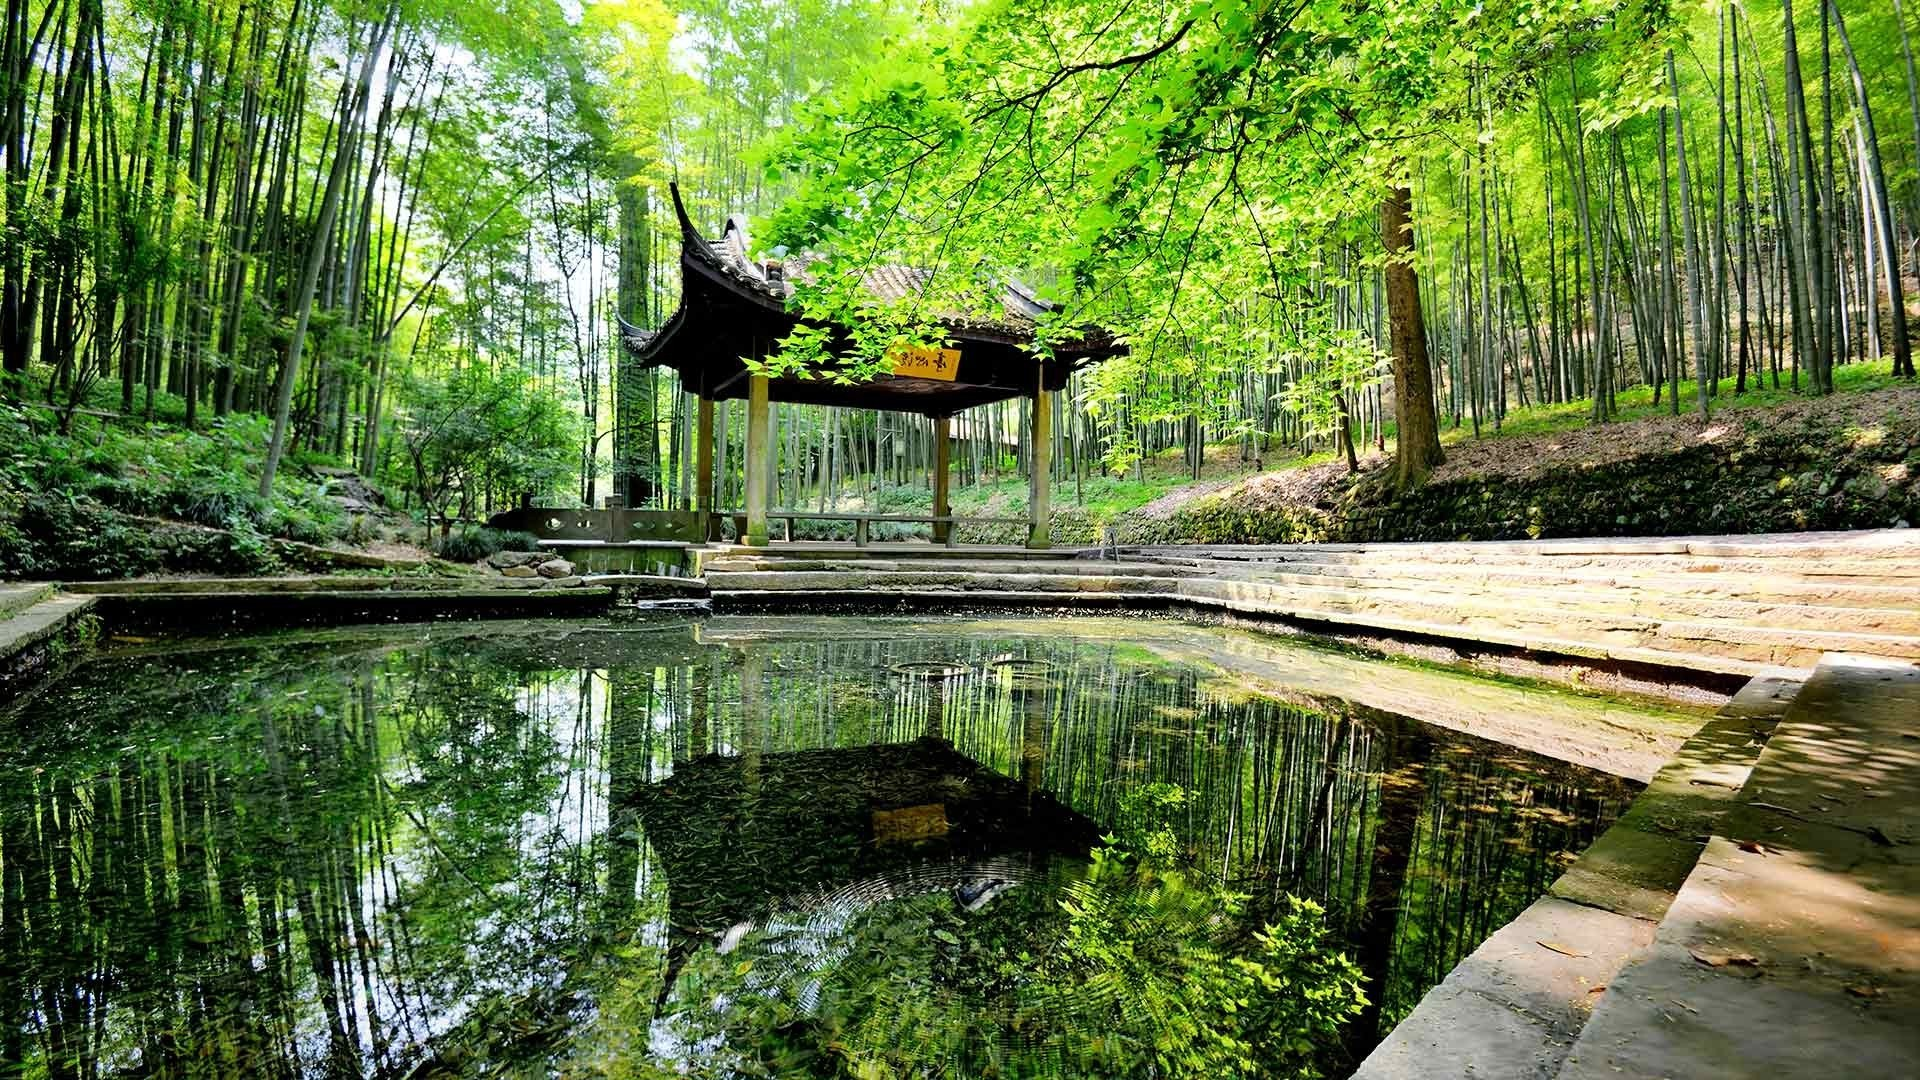 Res: 1920x1080, nature, Landscape, Architecture, Building, Asian Architecture, China,  Pagoda, Water, Trees, Forest, Lake, Reflection, Leaves Wallpapers HD /  Desktop and ...